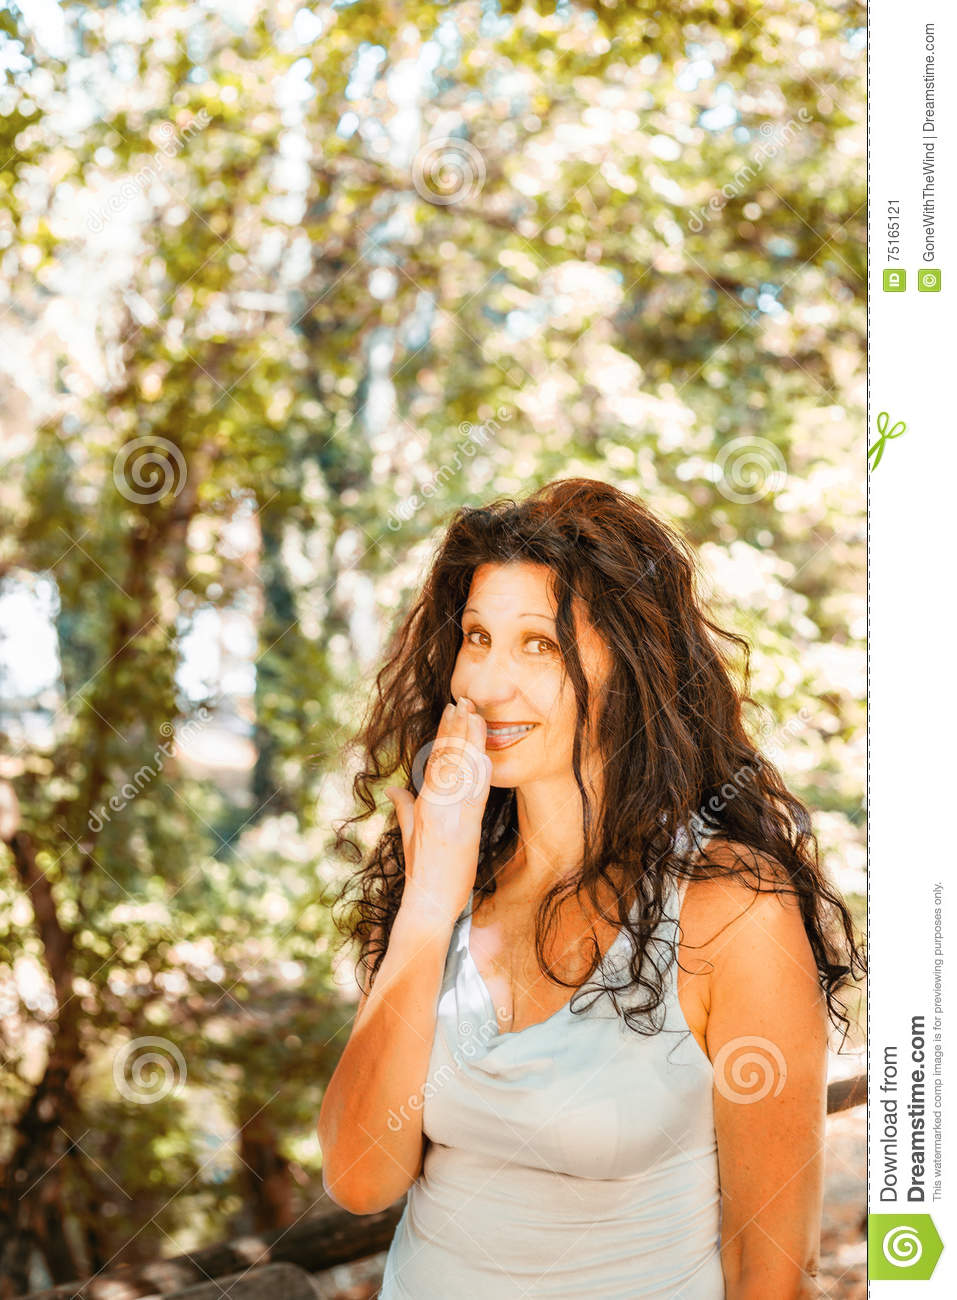 Busty Classy Mature Woman Covering Her Mouth Stock Image - Image Of Busty, Green 75165121-8753